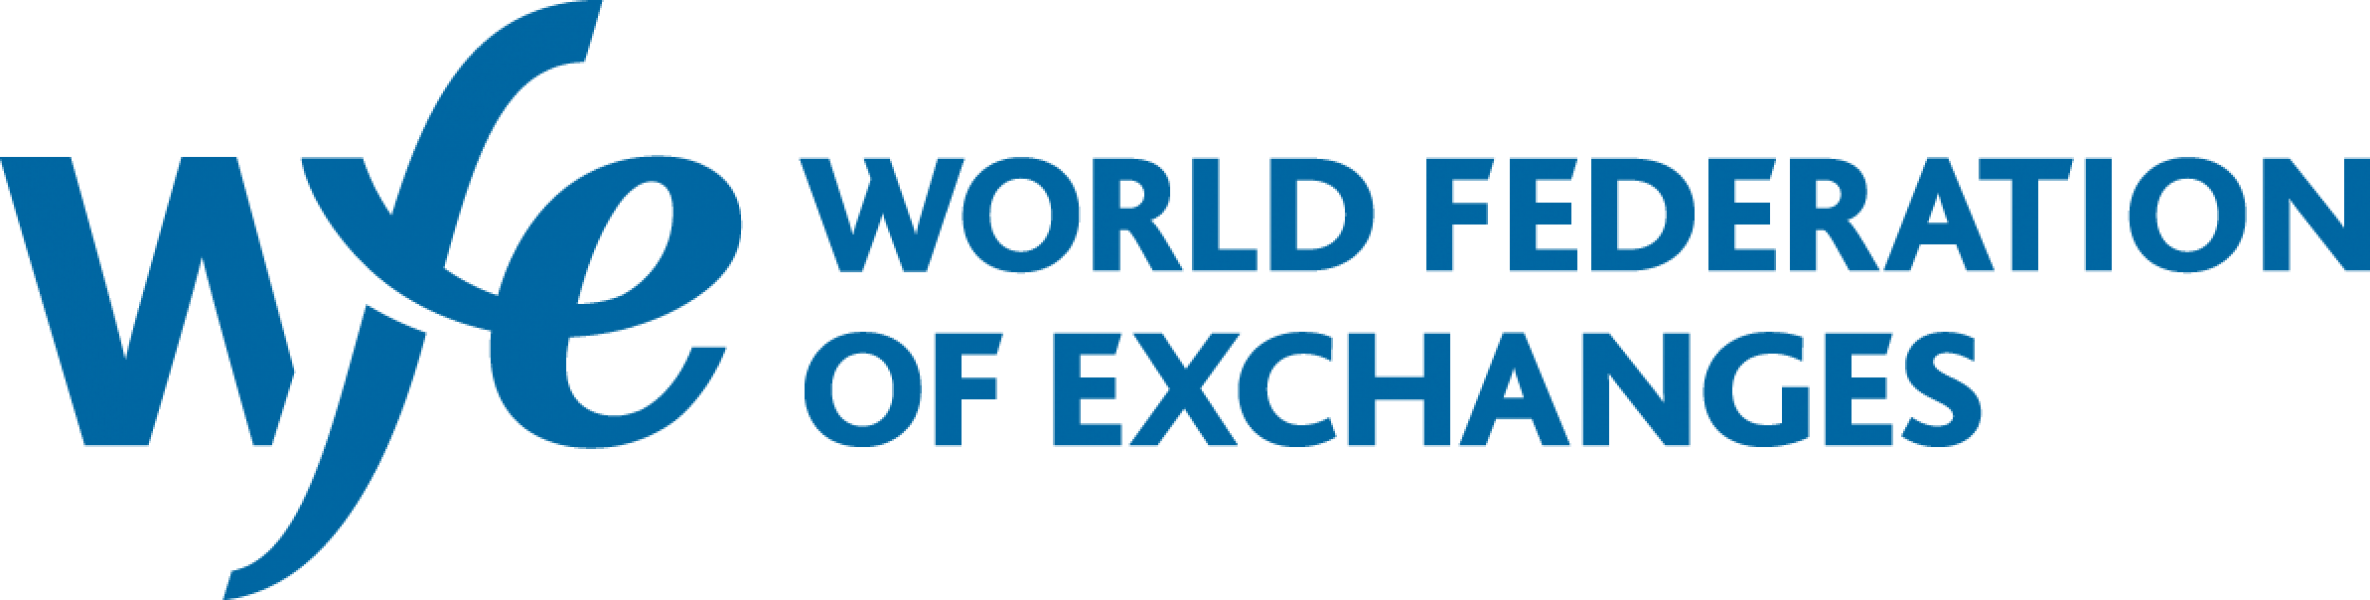 World-Federation-of-Exchanges-Calls-for-Vigilance